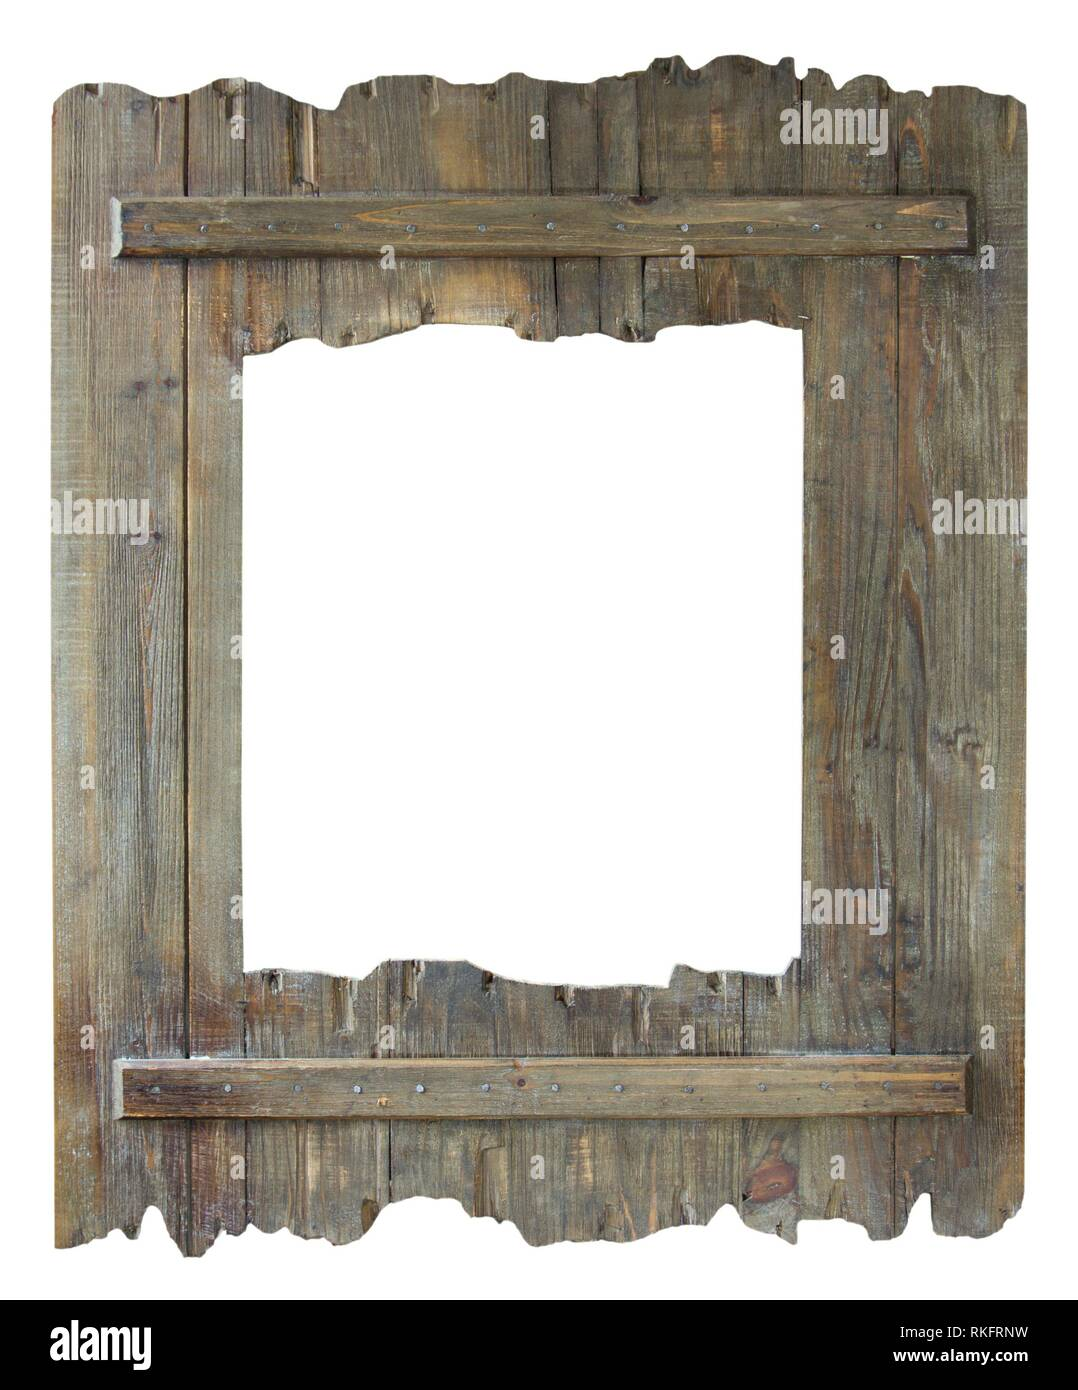 Swell Shabby Chic Backgrounds Stock Photos Shabby Chic Download Free Architecture Designs Itiscsunscenecom